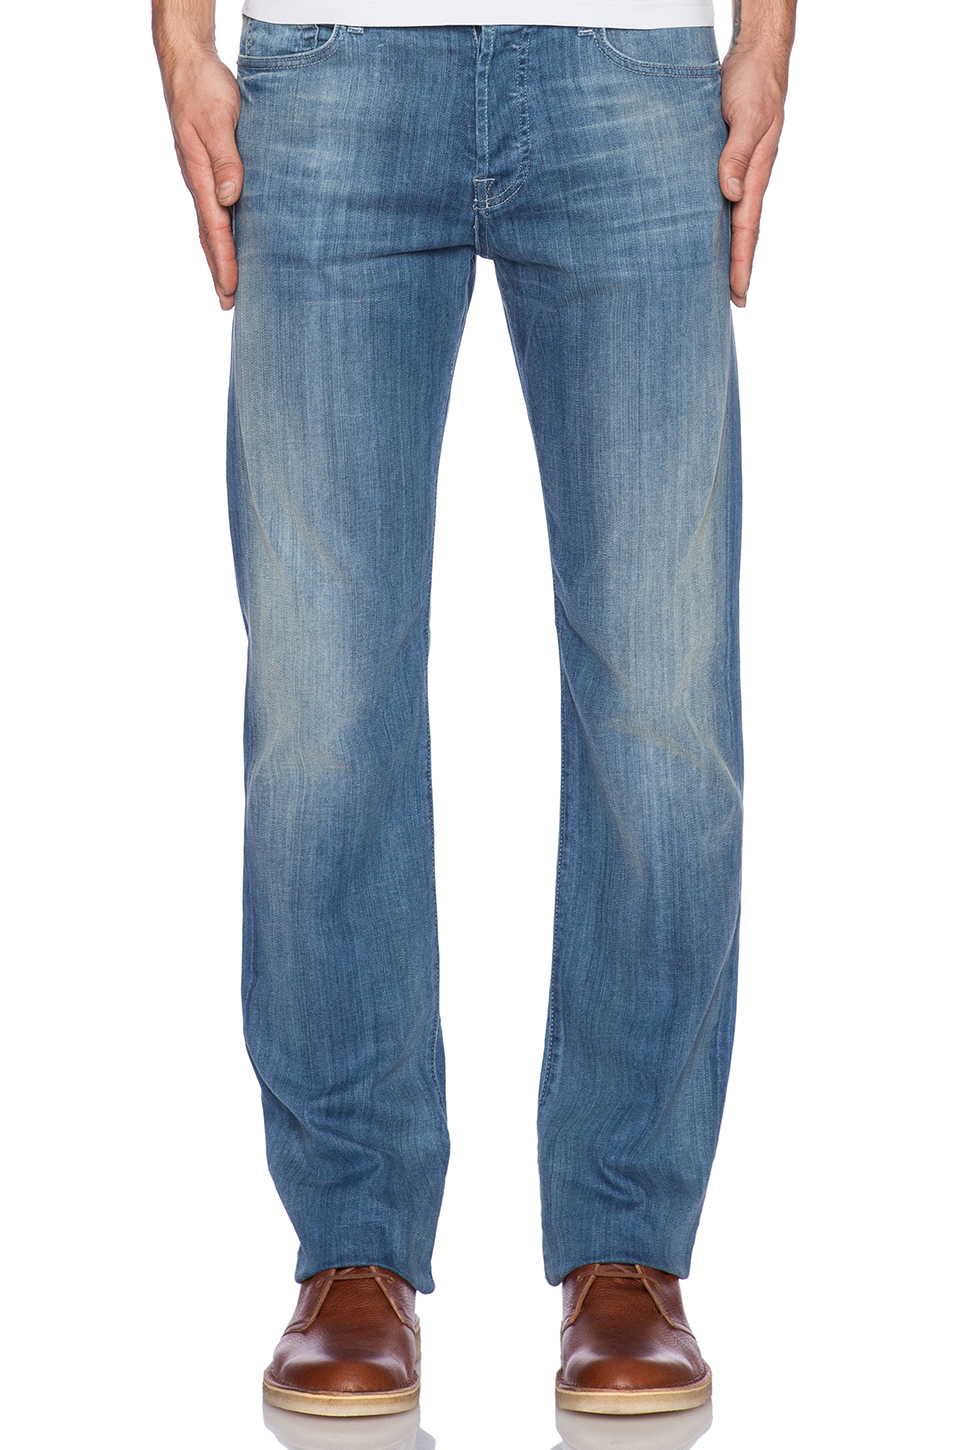 7 For All Mankind Standard in Washed Out